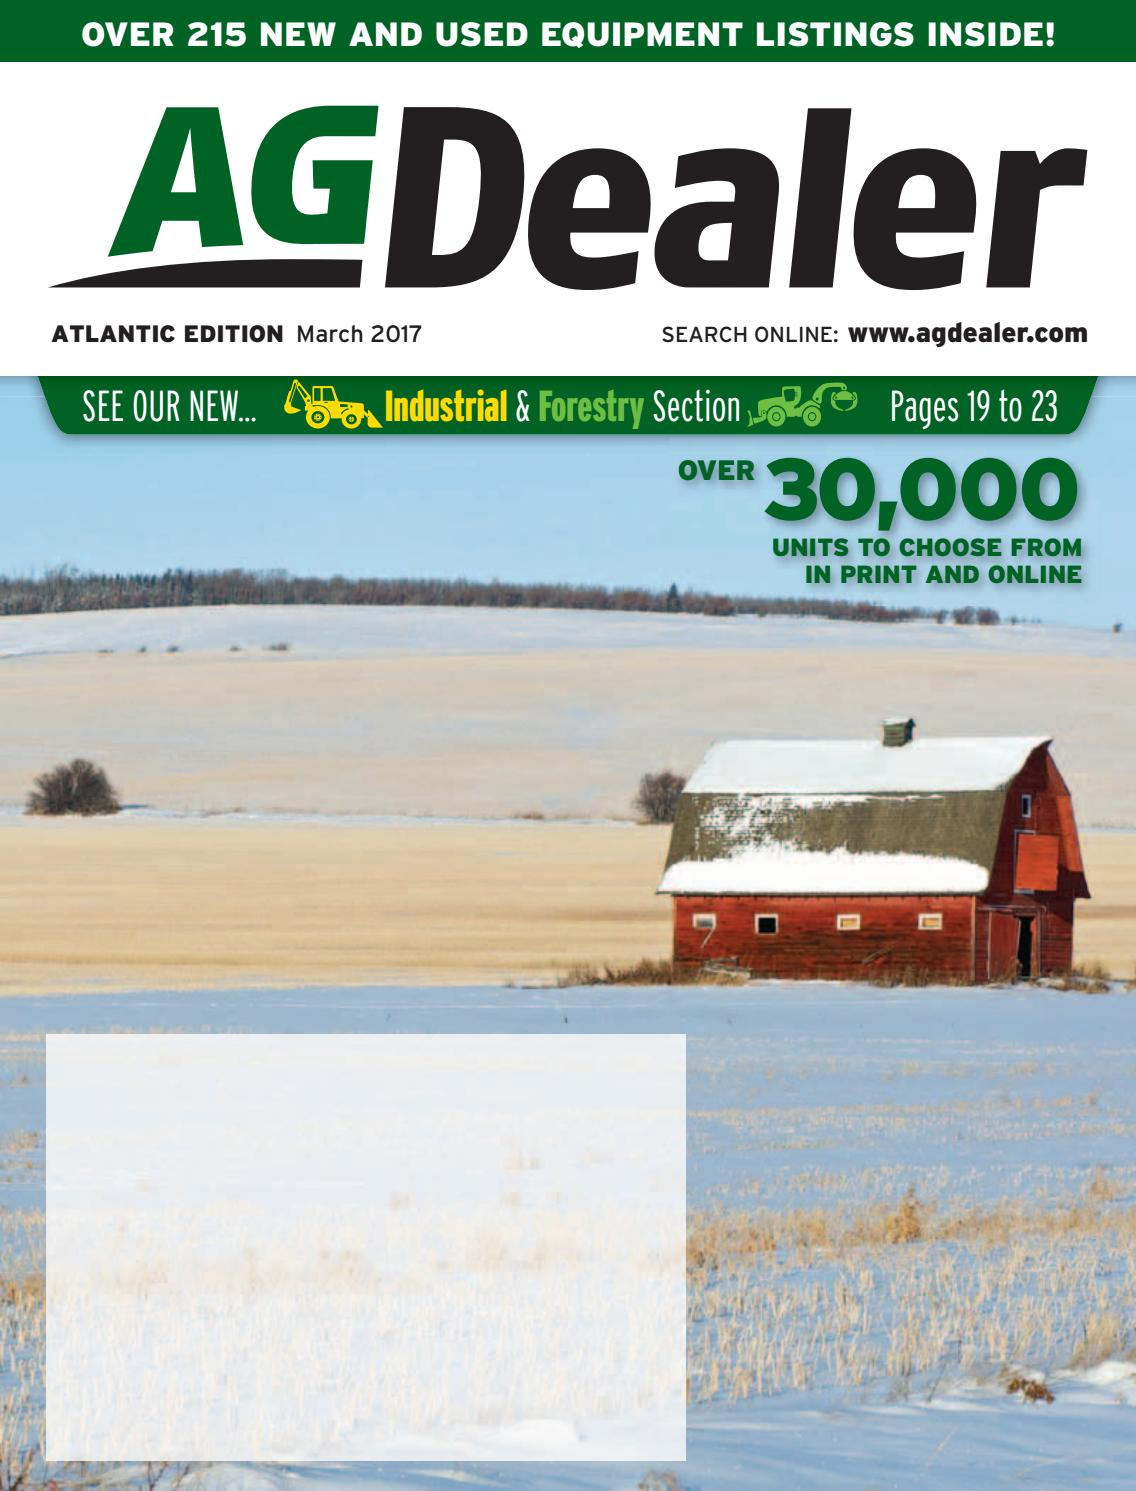 AGDealer Atlantic Edition, March 2017 by Farm Business